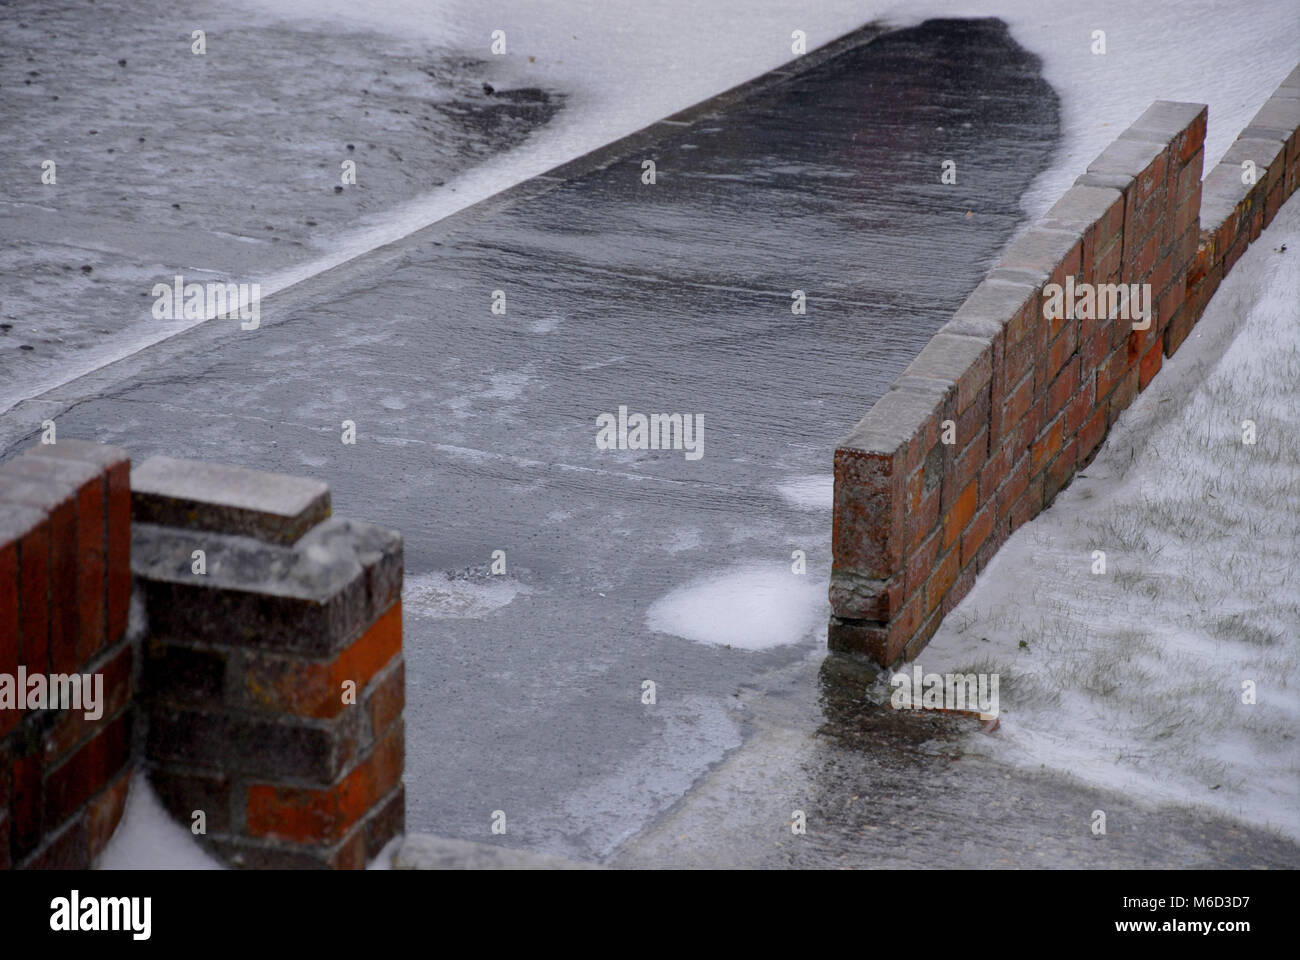 Portland, Dorset. 2nd March 2018 - Freezing rain hit Fortuneswell, Isle of Portland, overnight. Roads and footpaths - Stock Image